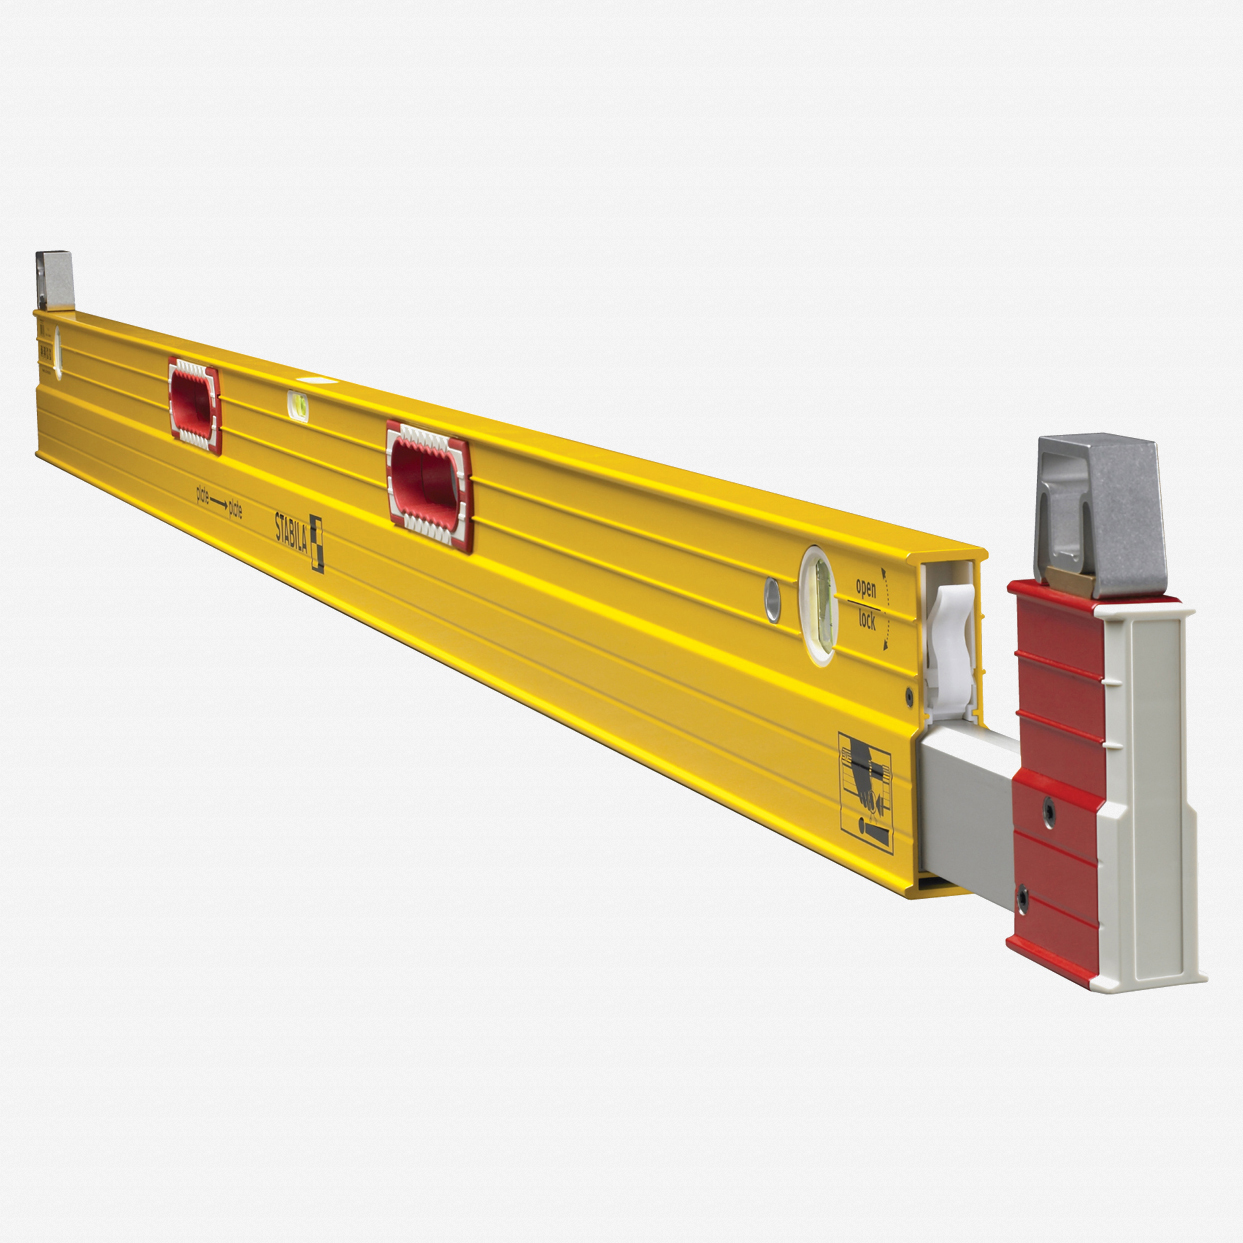 Stabila 35712 Type 106T Extendable Plate Level, 7' - 12' with Removable Stand-Offs - KC Tool